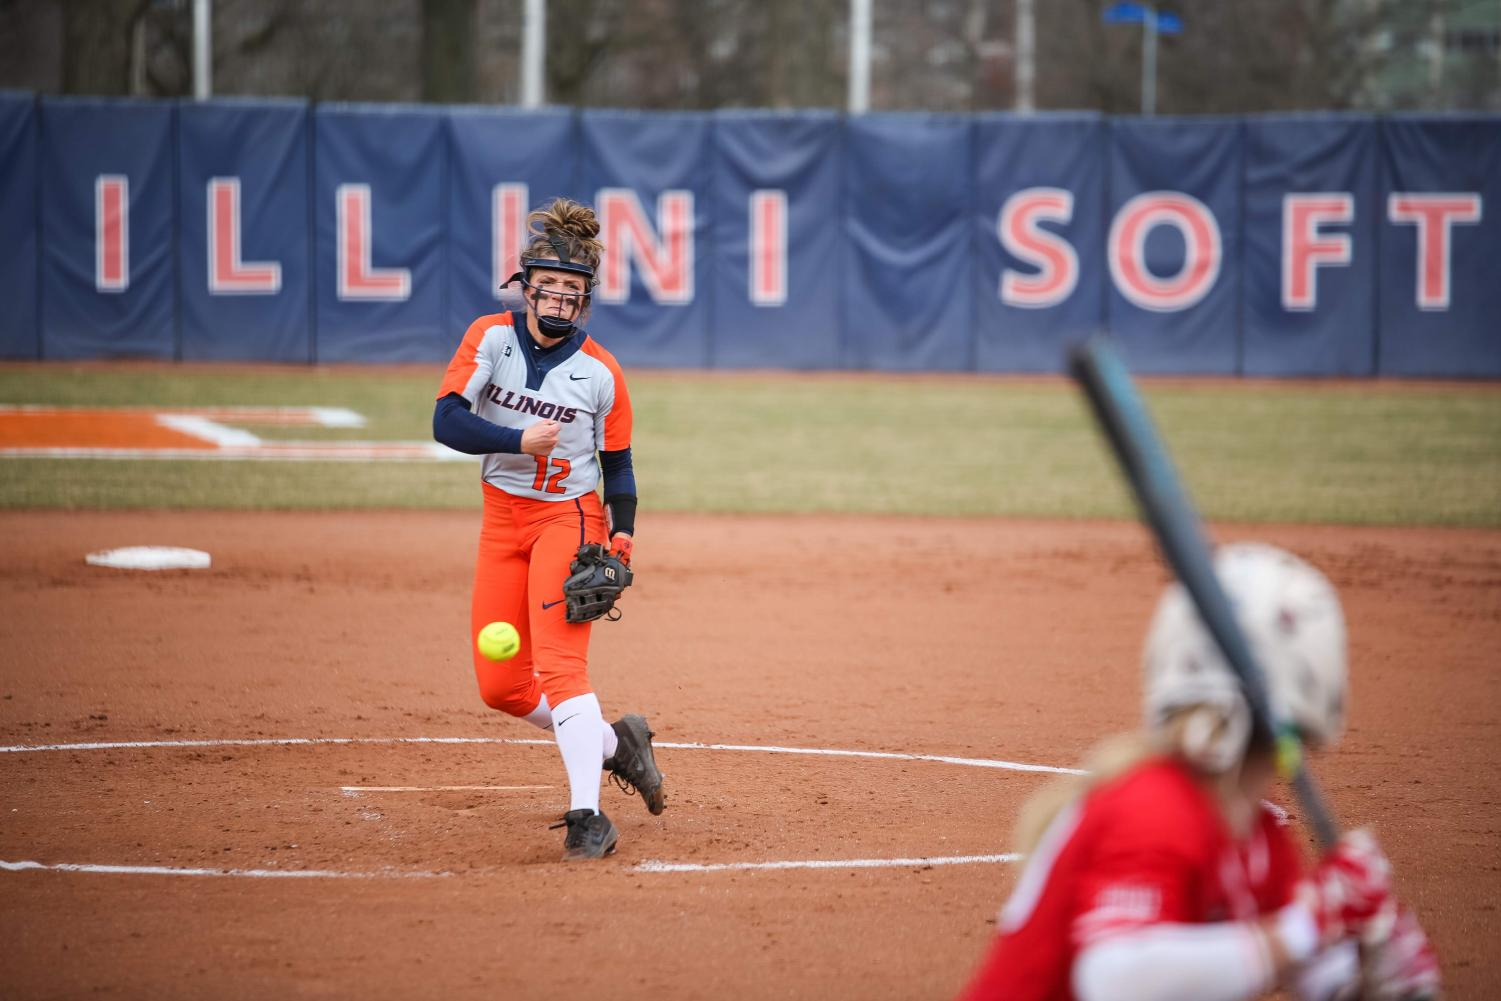 Taylor Edwards pitches at Eichelberger Field versus Illinois State on April 3. The team has learned to focus on the moment rather than worrying about prior plays.